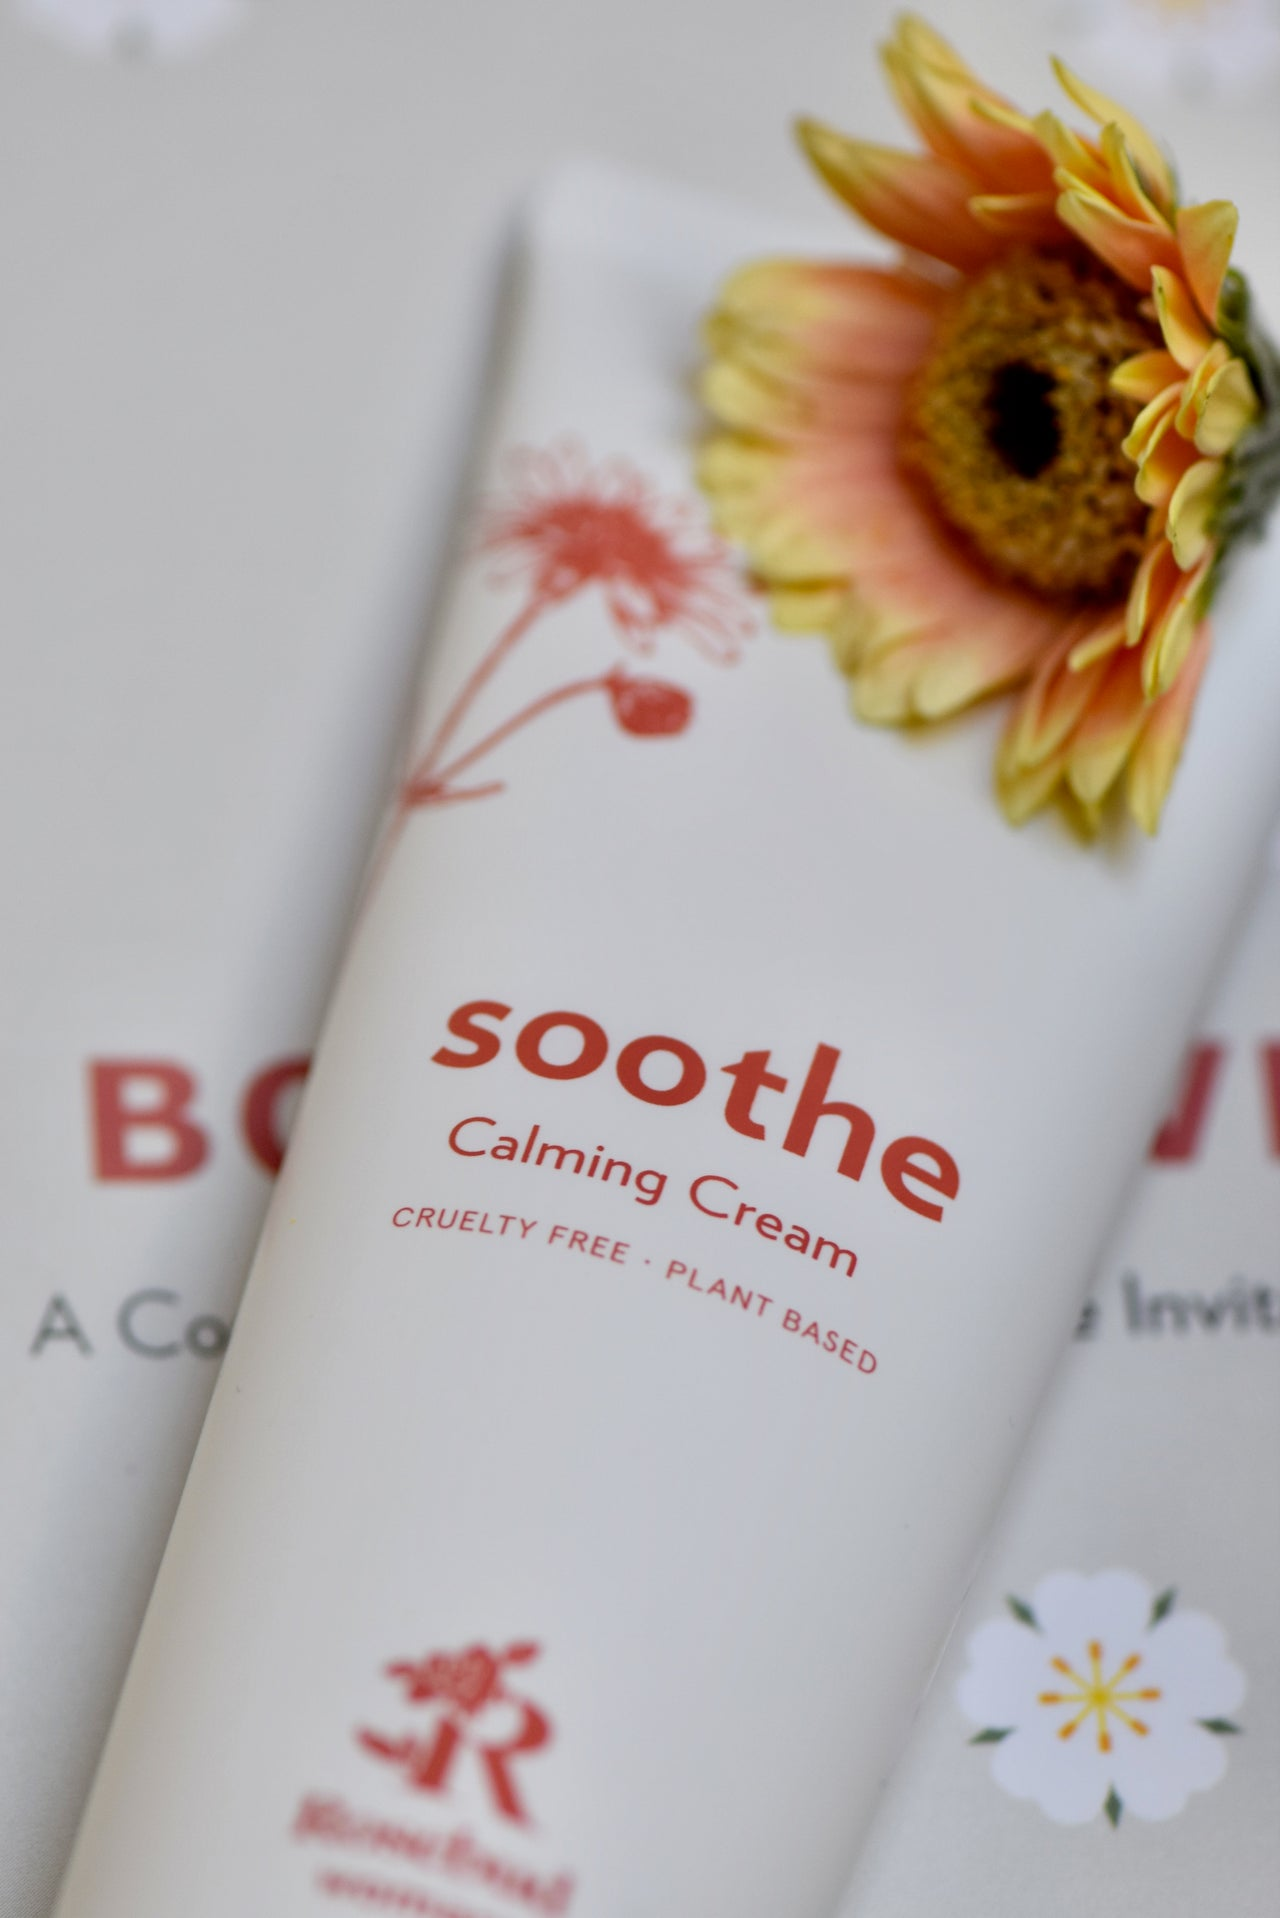 Soothe: Calming Cream